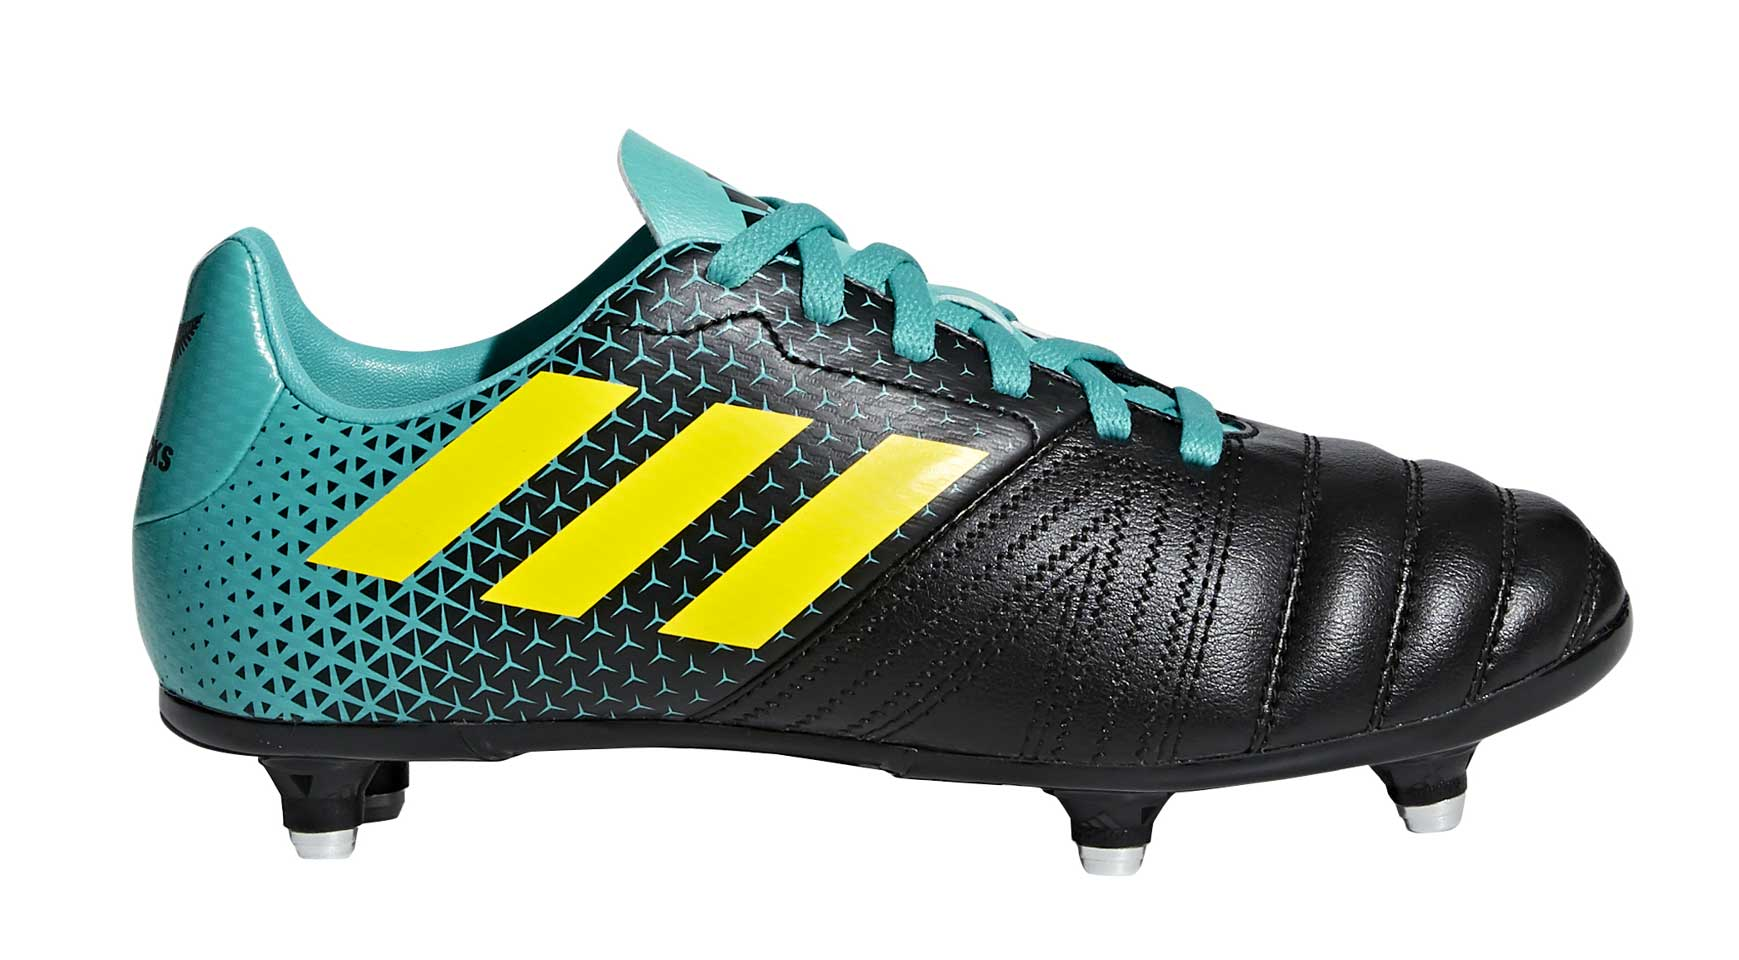 La Chaussures De Chaussure Ac7721 Rugby Femme Adidas Allblacks rdxeWCBo